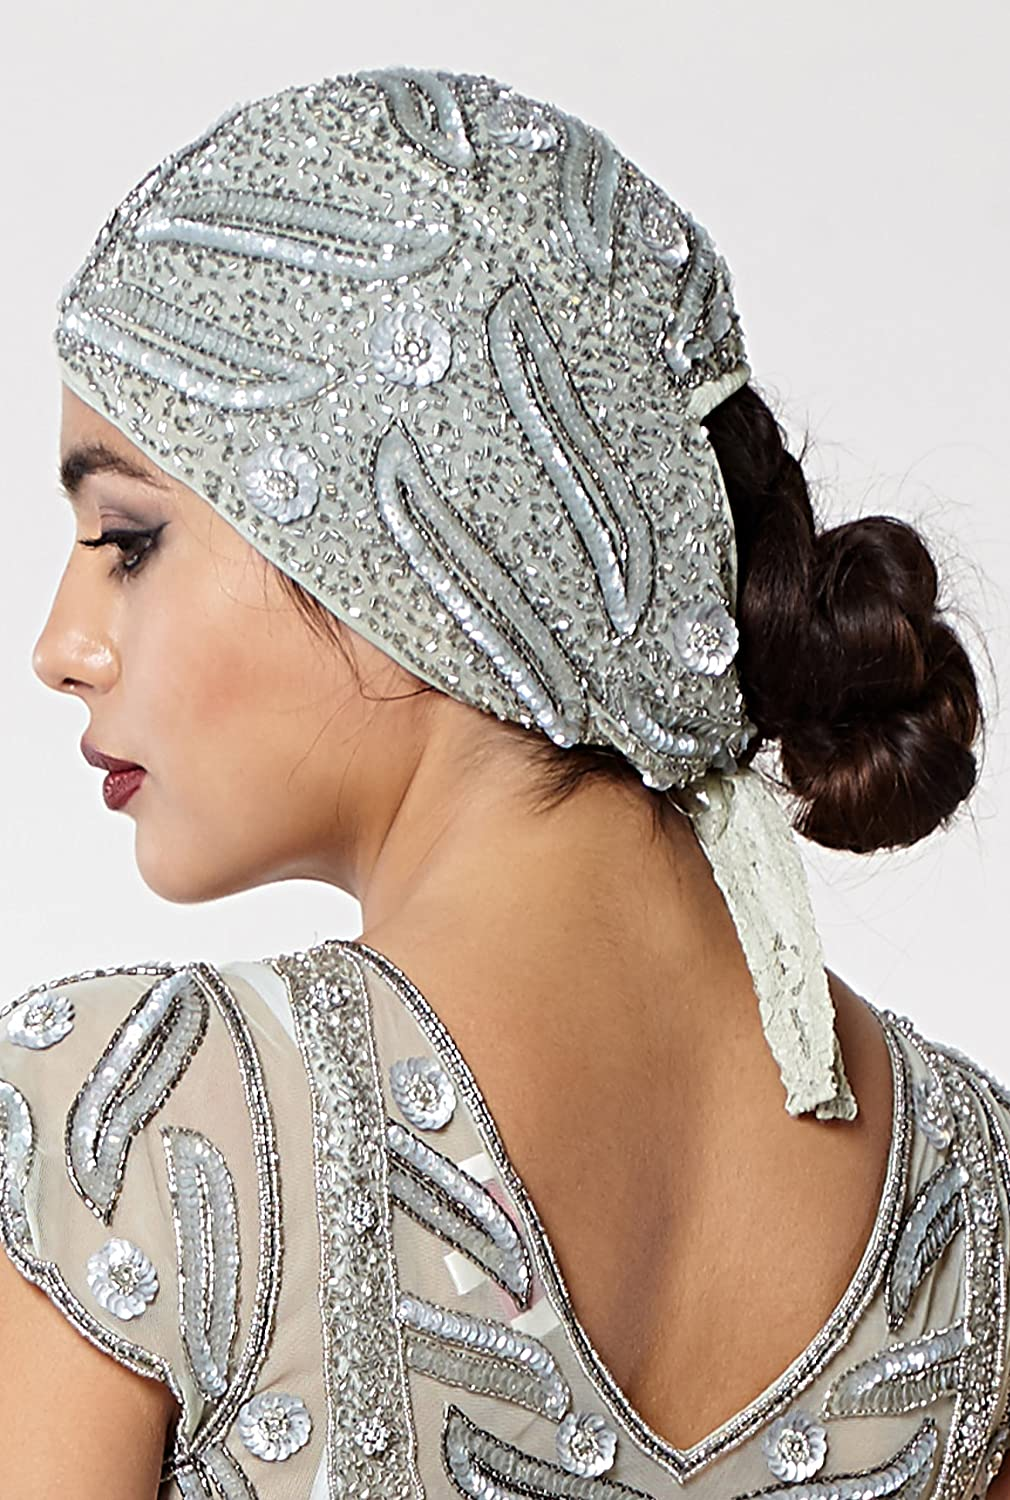 1920s Hairstyles History- Long Hair to Bobbed Hair gatsbylady london Juliet Vintage Inspired Flapper Cap in Grey Silver $35.07 AT vintagedancer.com